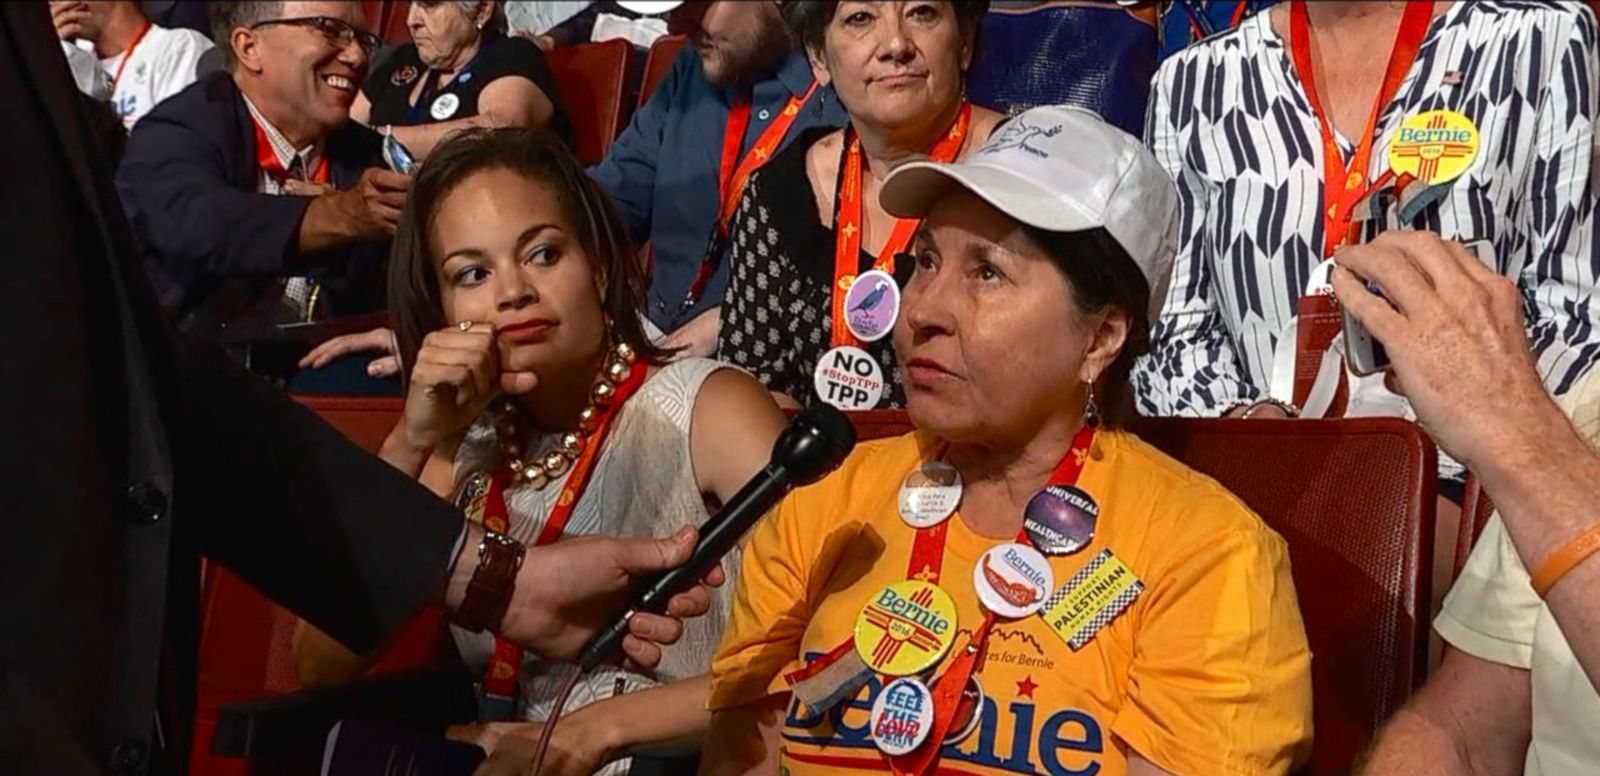 VIDEO: Bernie Sanders Delegates Remain Hopeful